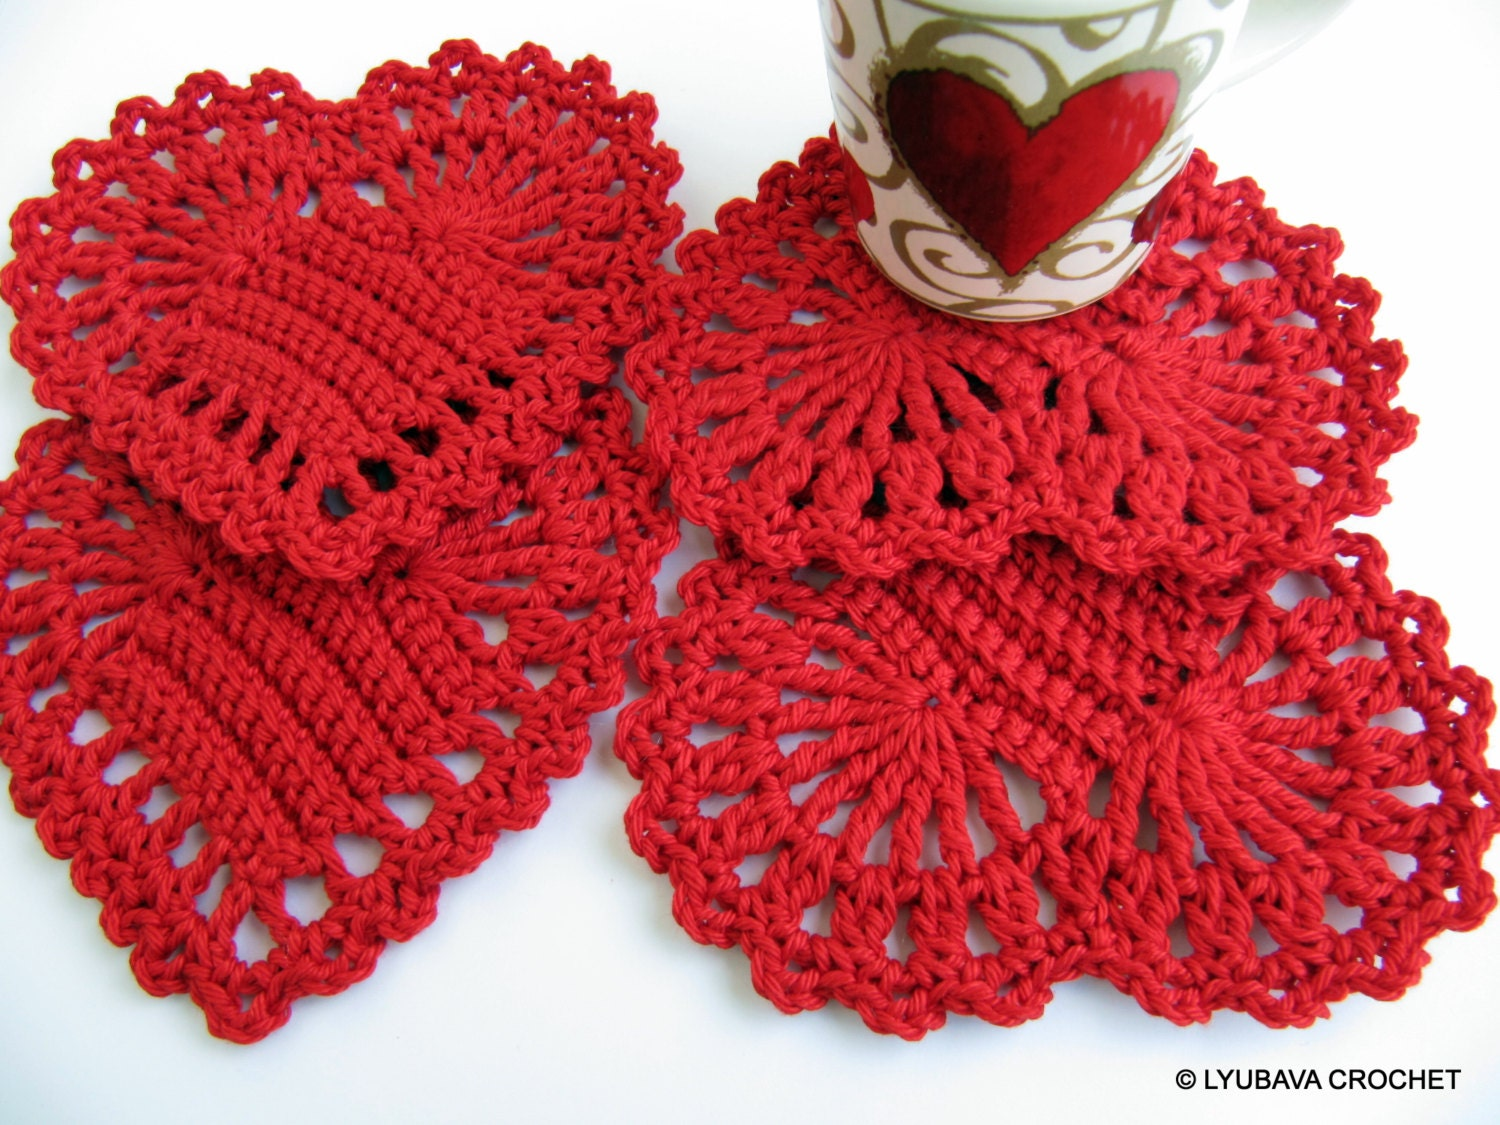 Crochet Patterns Hearts : CROCHET Heart PATTERN Heart Coasters Valentines by LyubavaCrochet